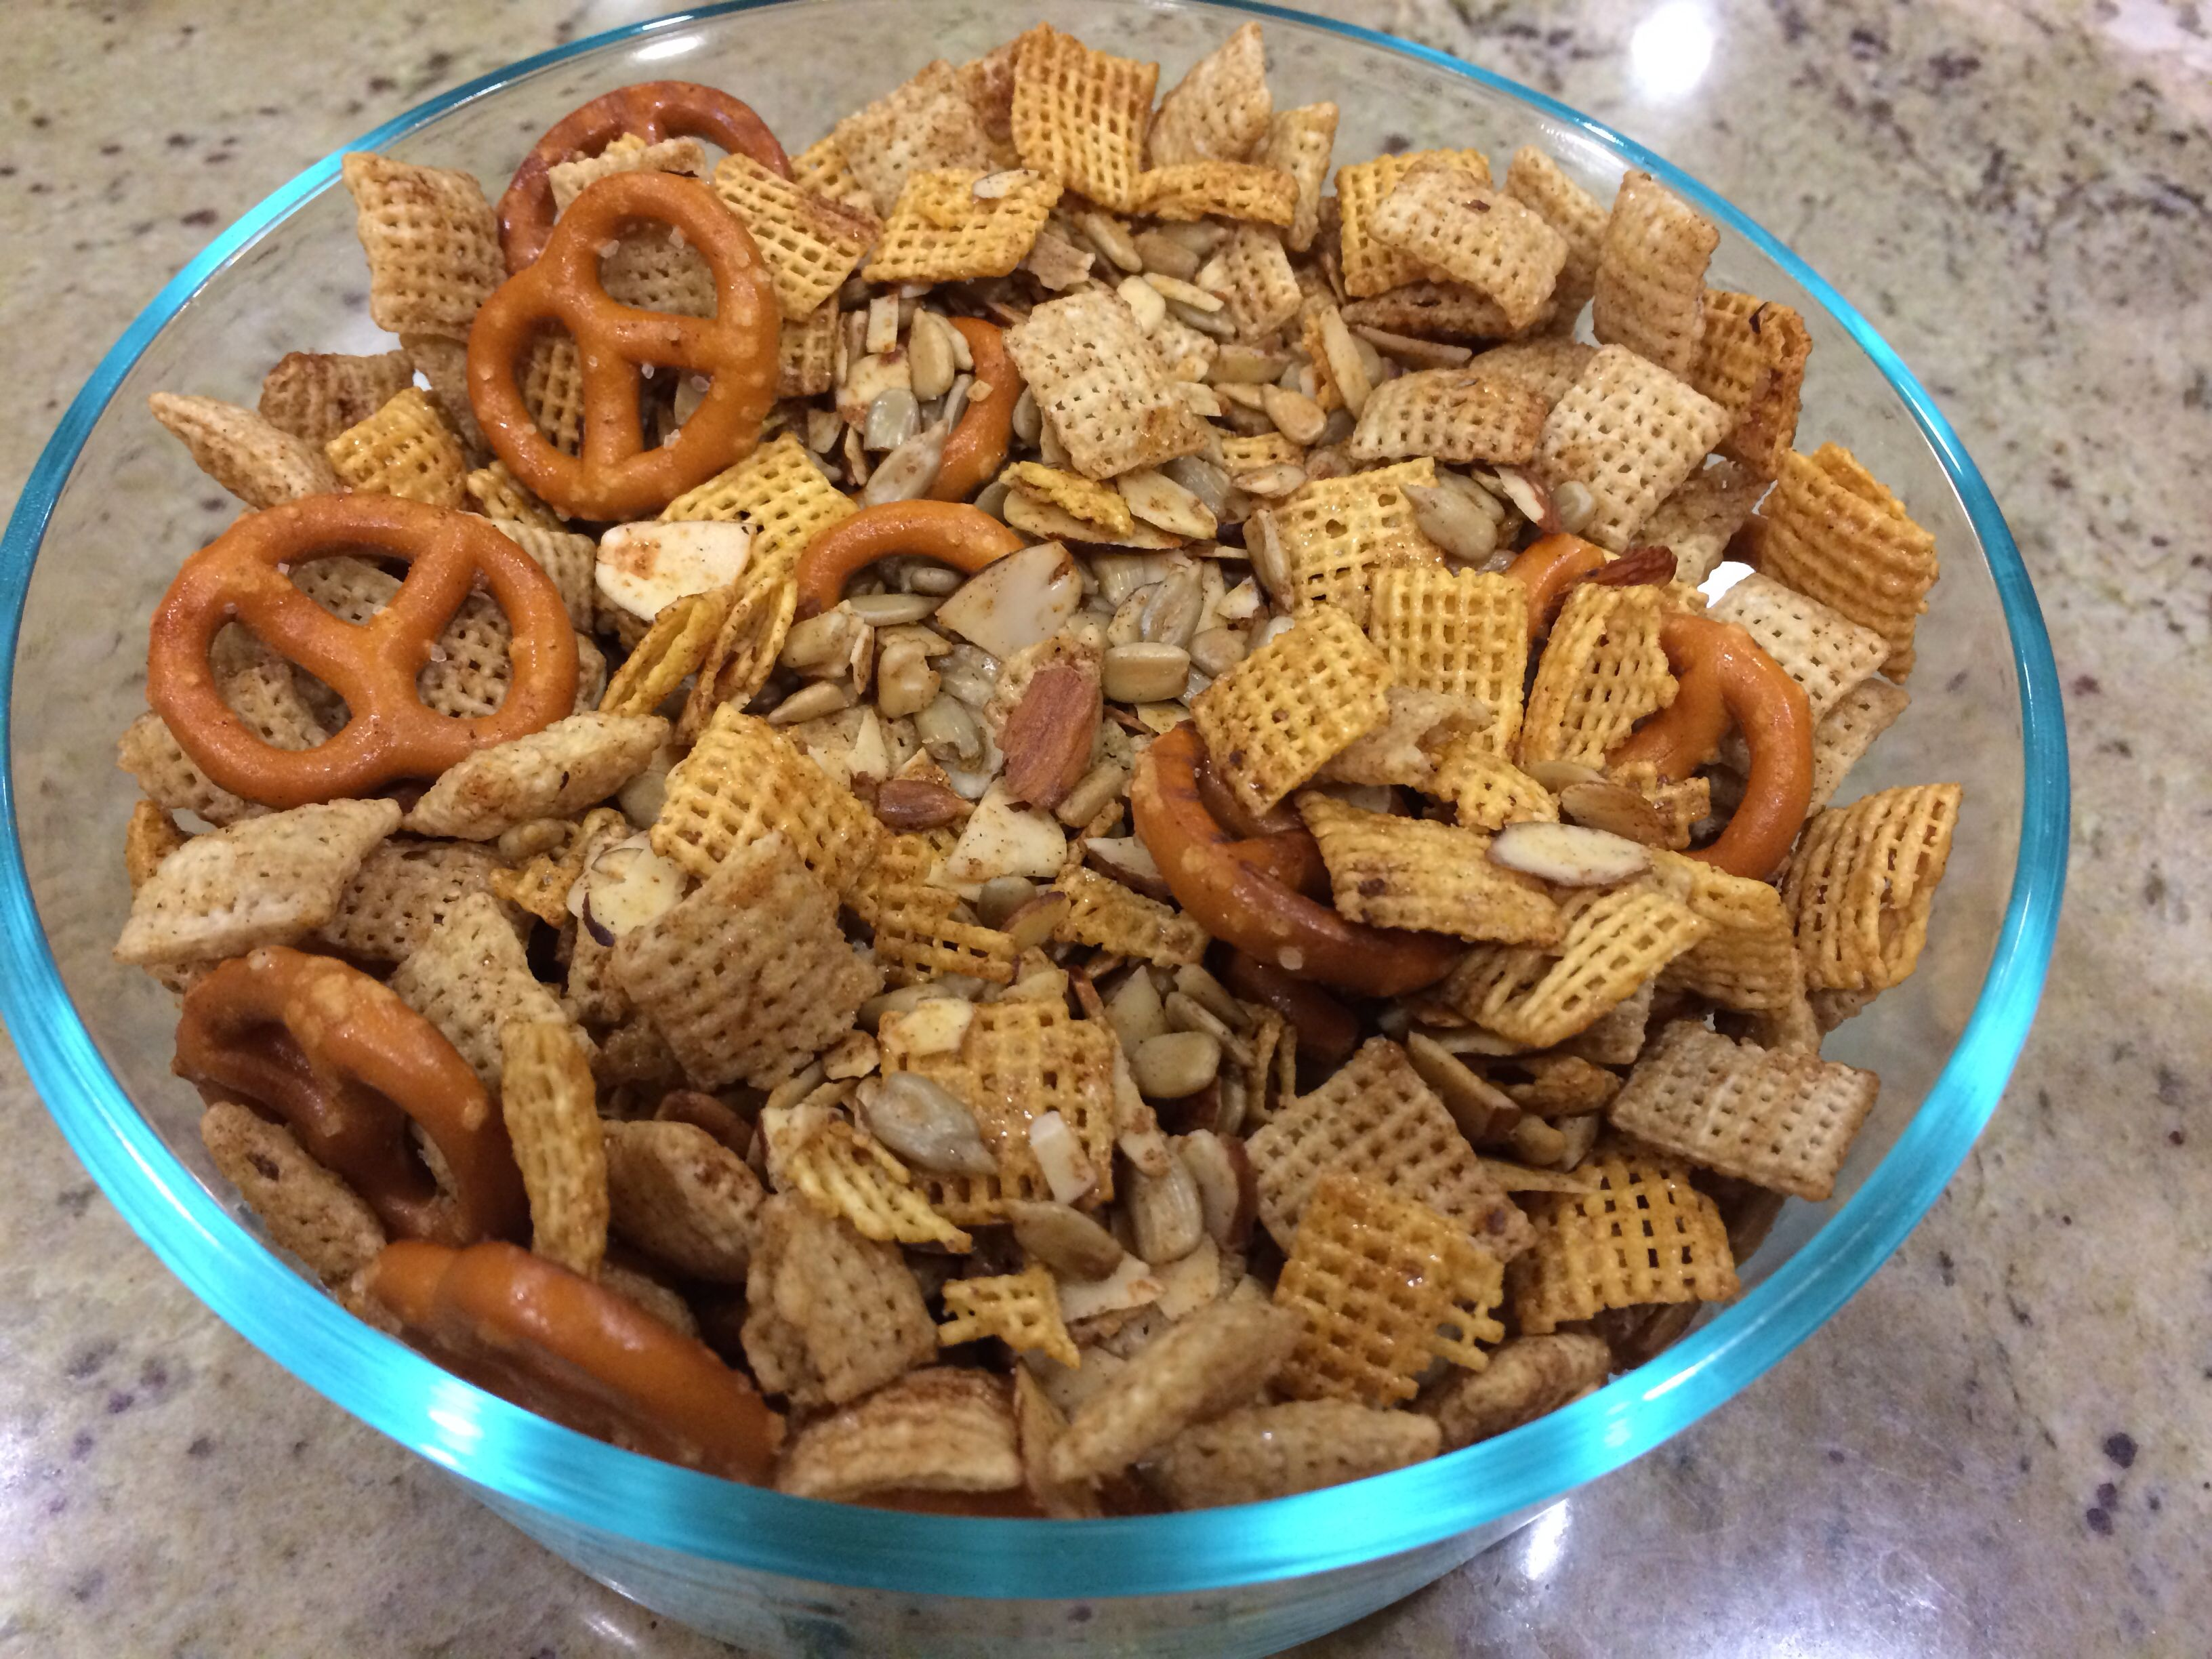 Mom's Crazy GlutenFree Chex Mix After searching for a